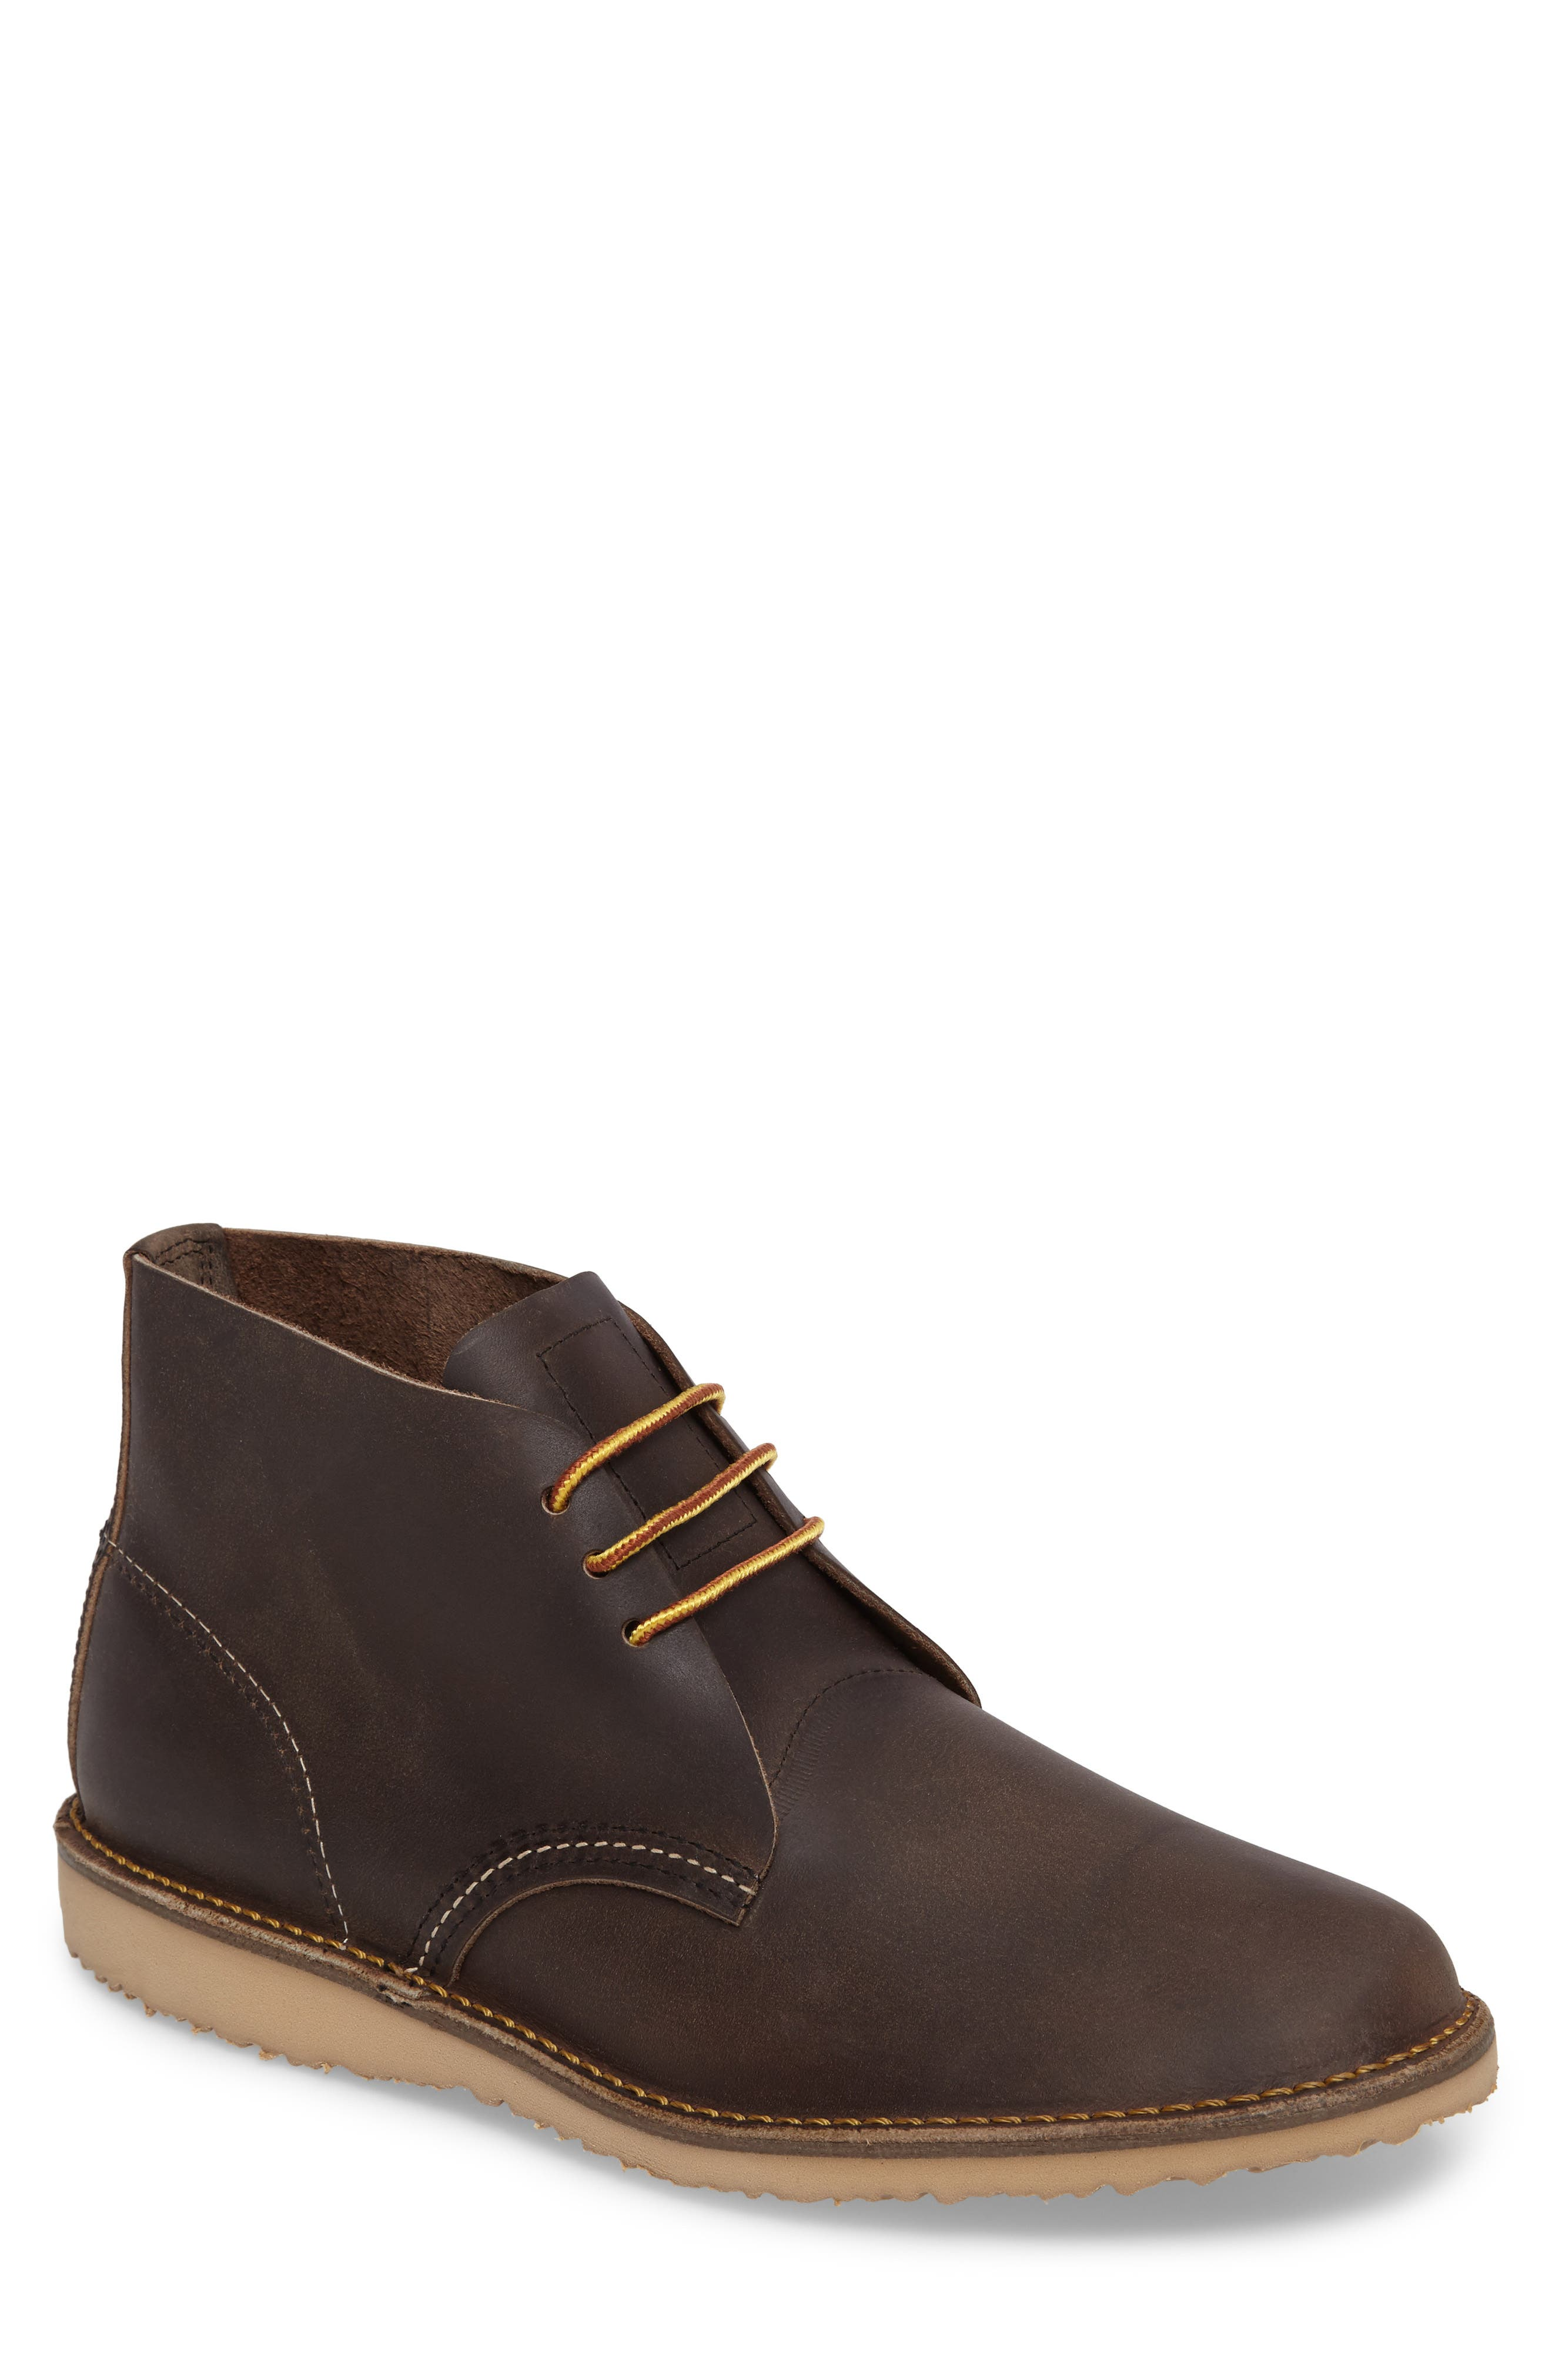 Chukka Boot,                         Main,                         color, Concrete Leather